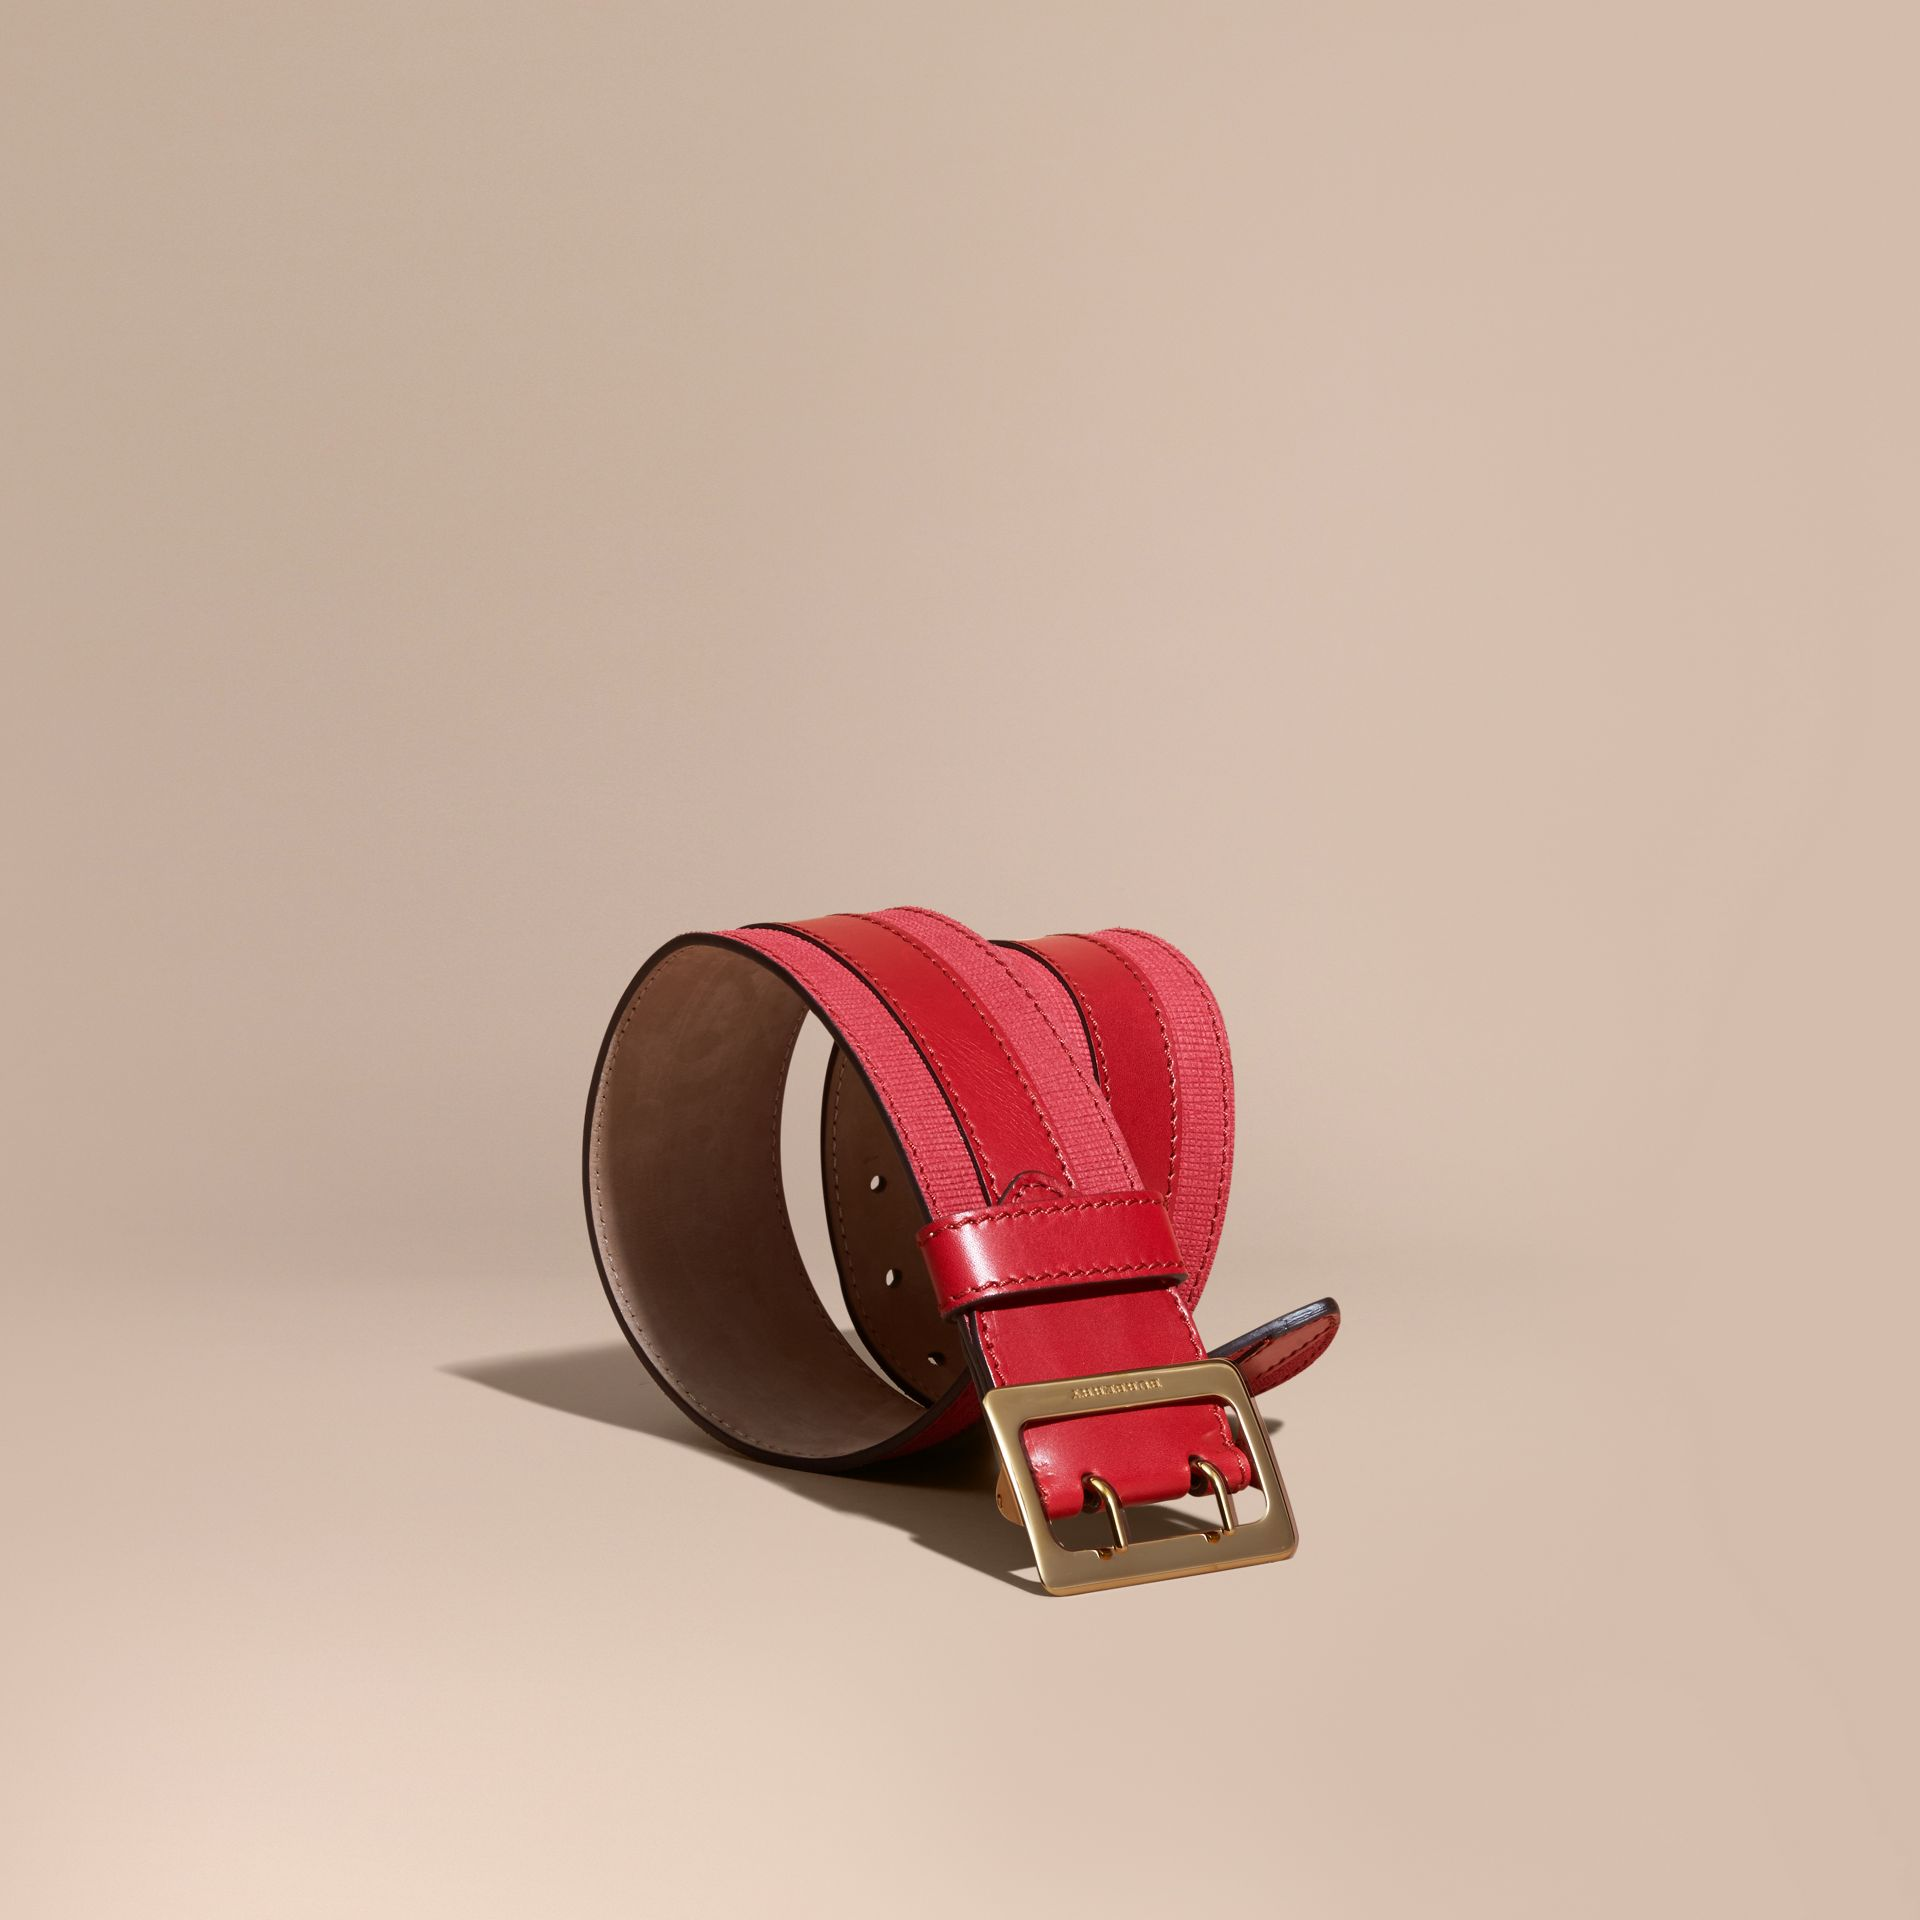 Plum pink Appliquéd Textured Suede and Leather Belt Plum Pink - gallery image 1